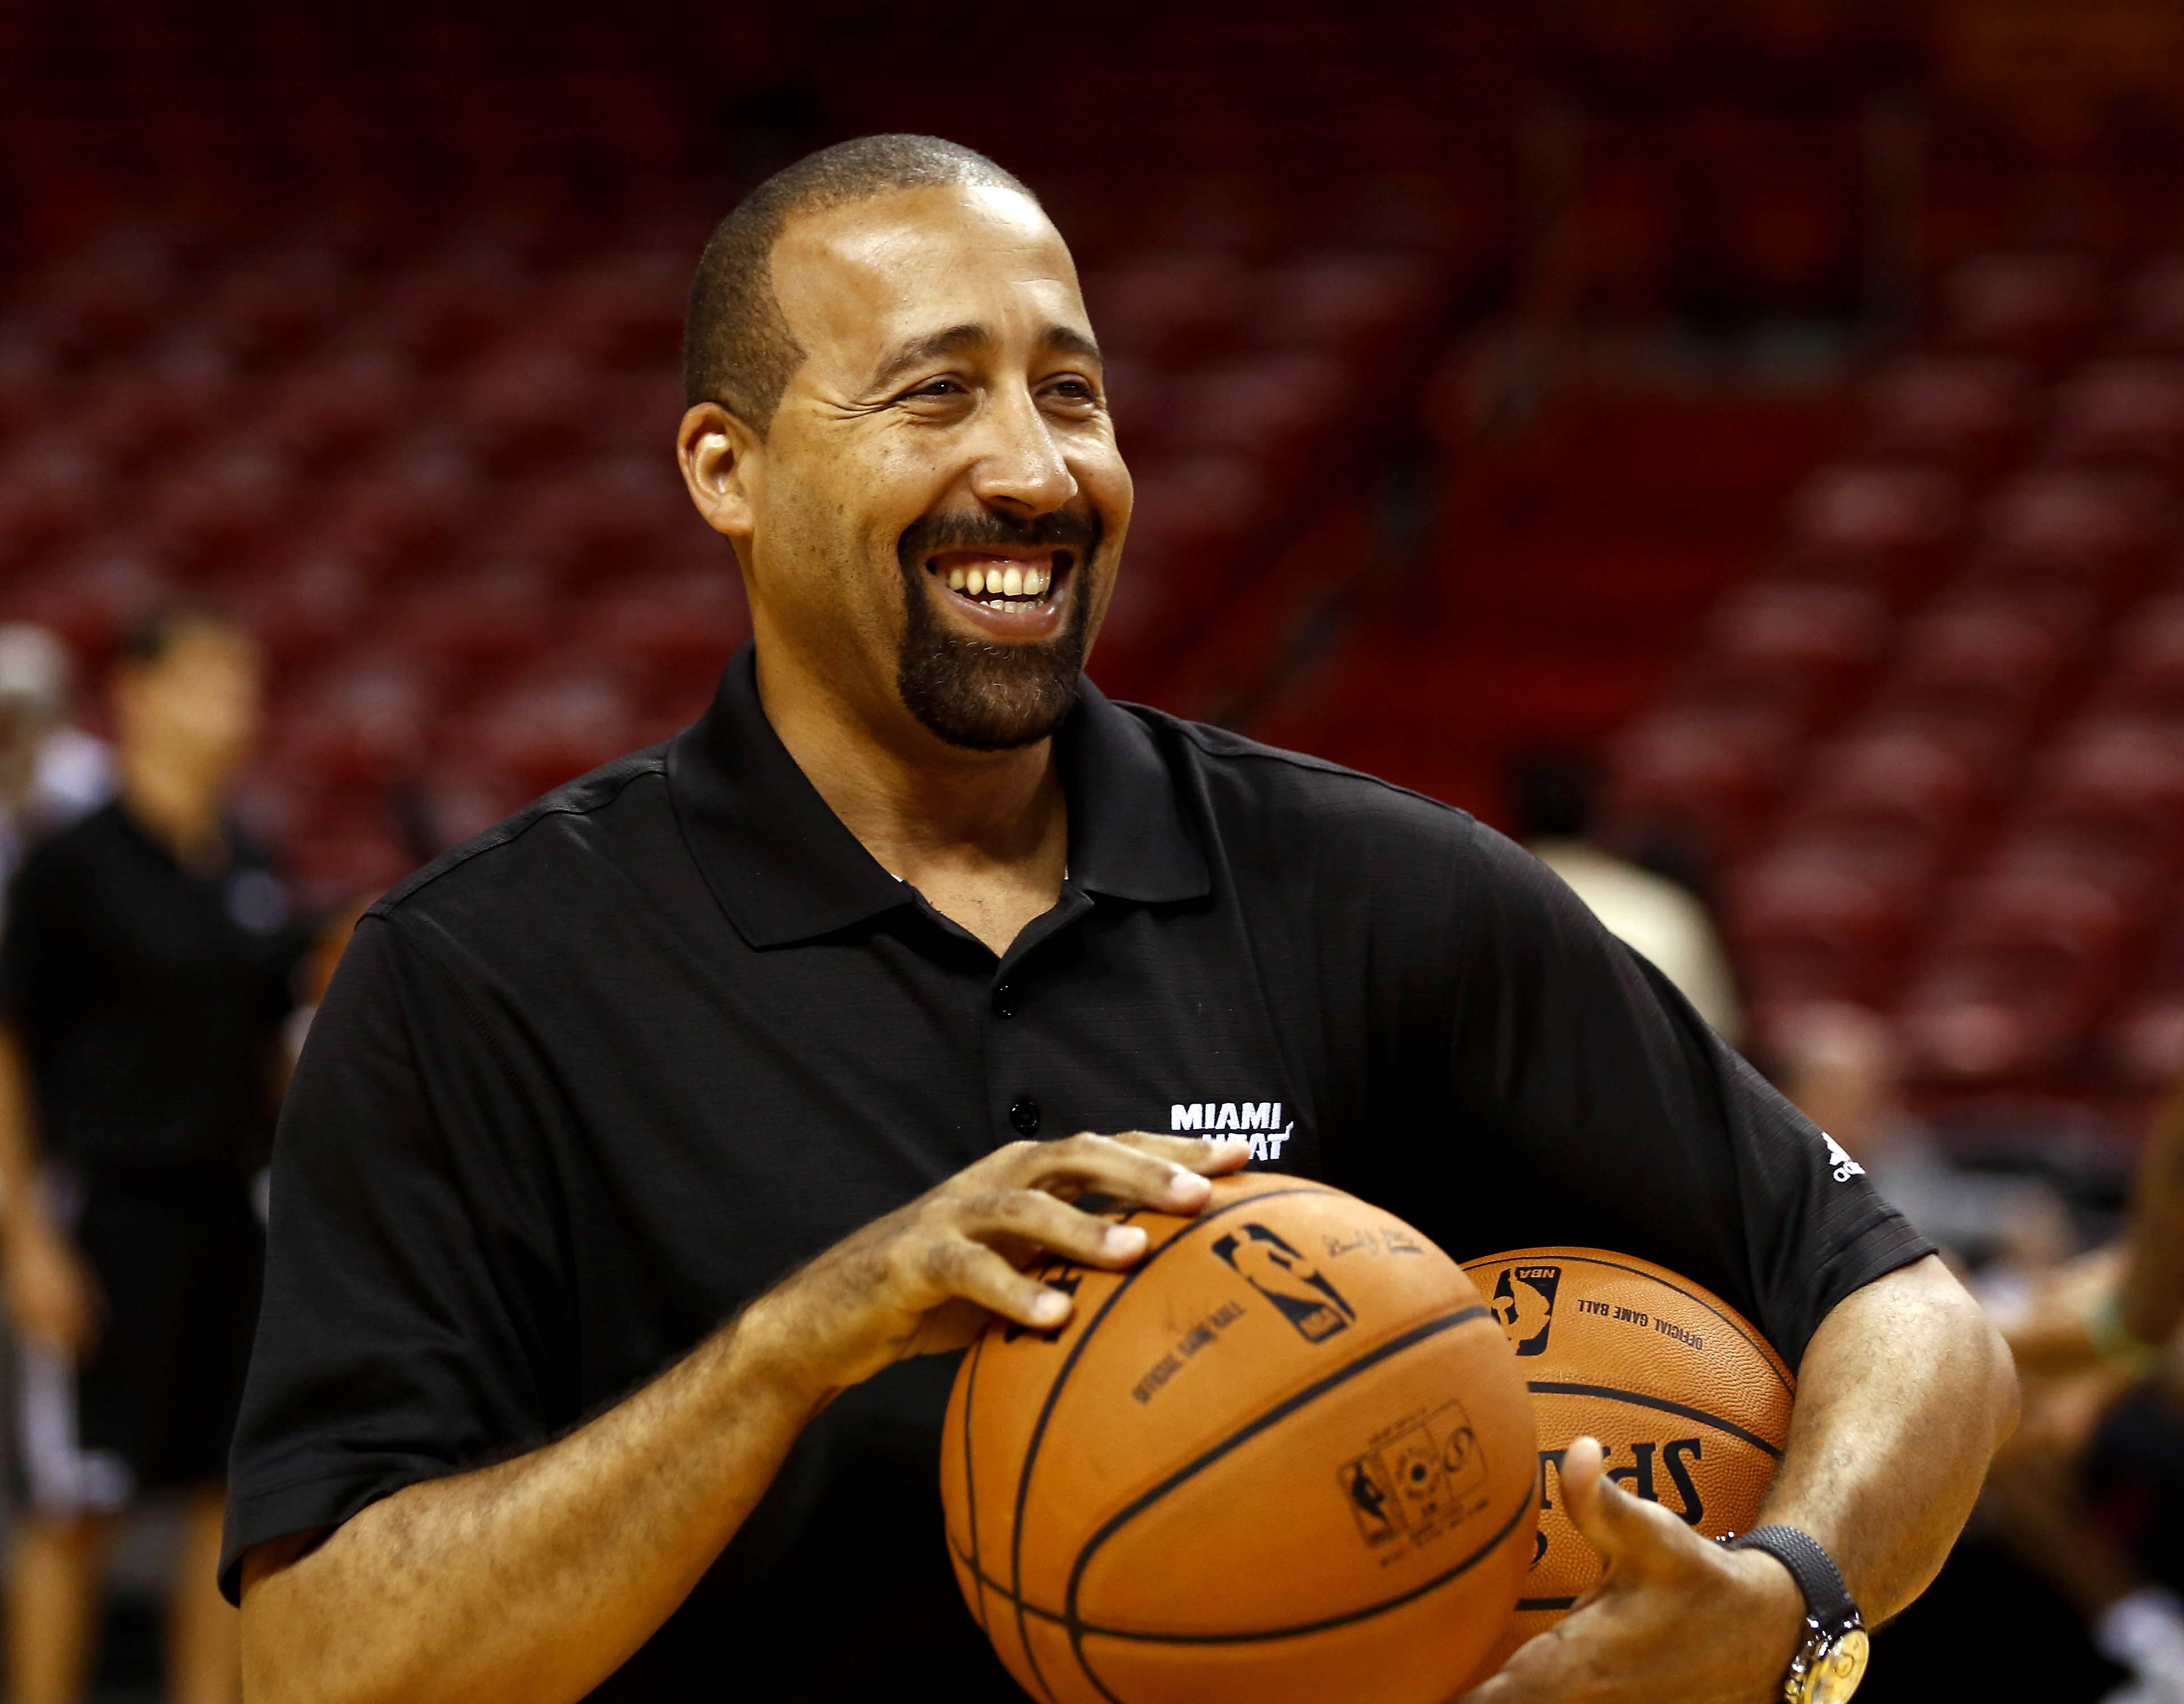 DAVID FIZDALE,  MIAMI HEAT -  ASSISTANT COACH/DIRECTOR OF PLAYER DEVELOPMENT  (photo: Robert Mayer / USA TODAY Sports)